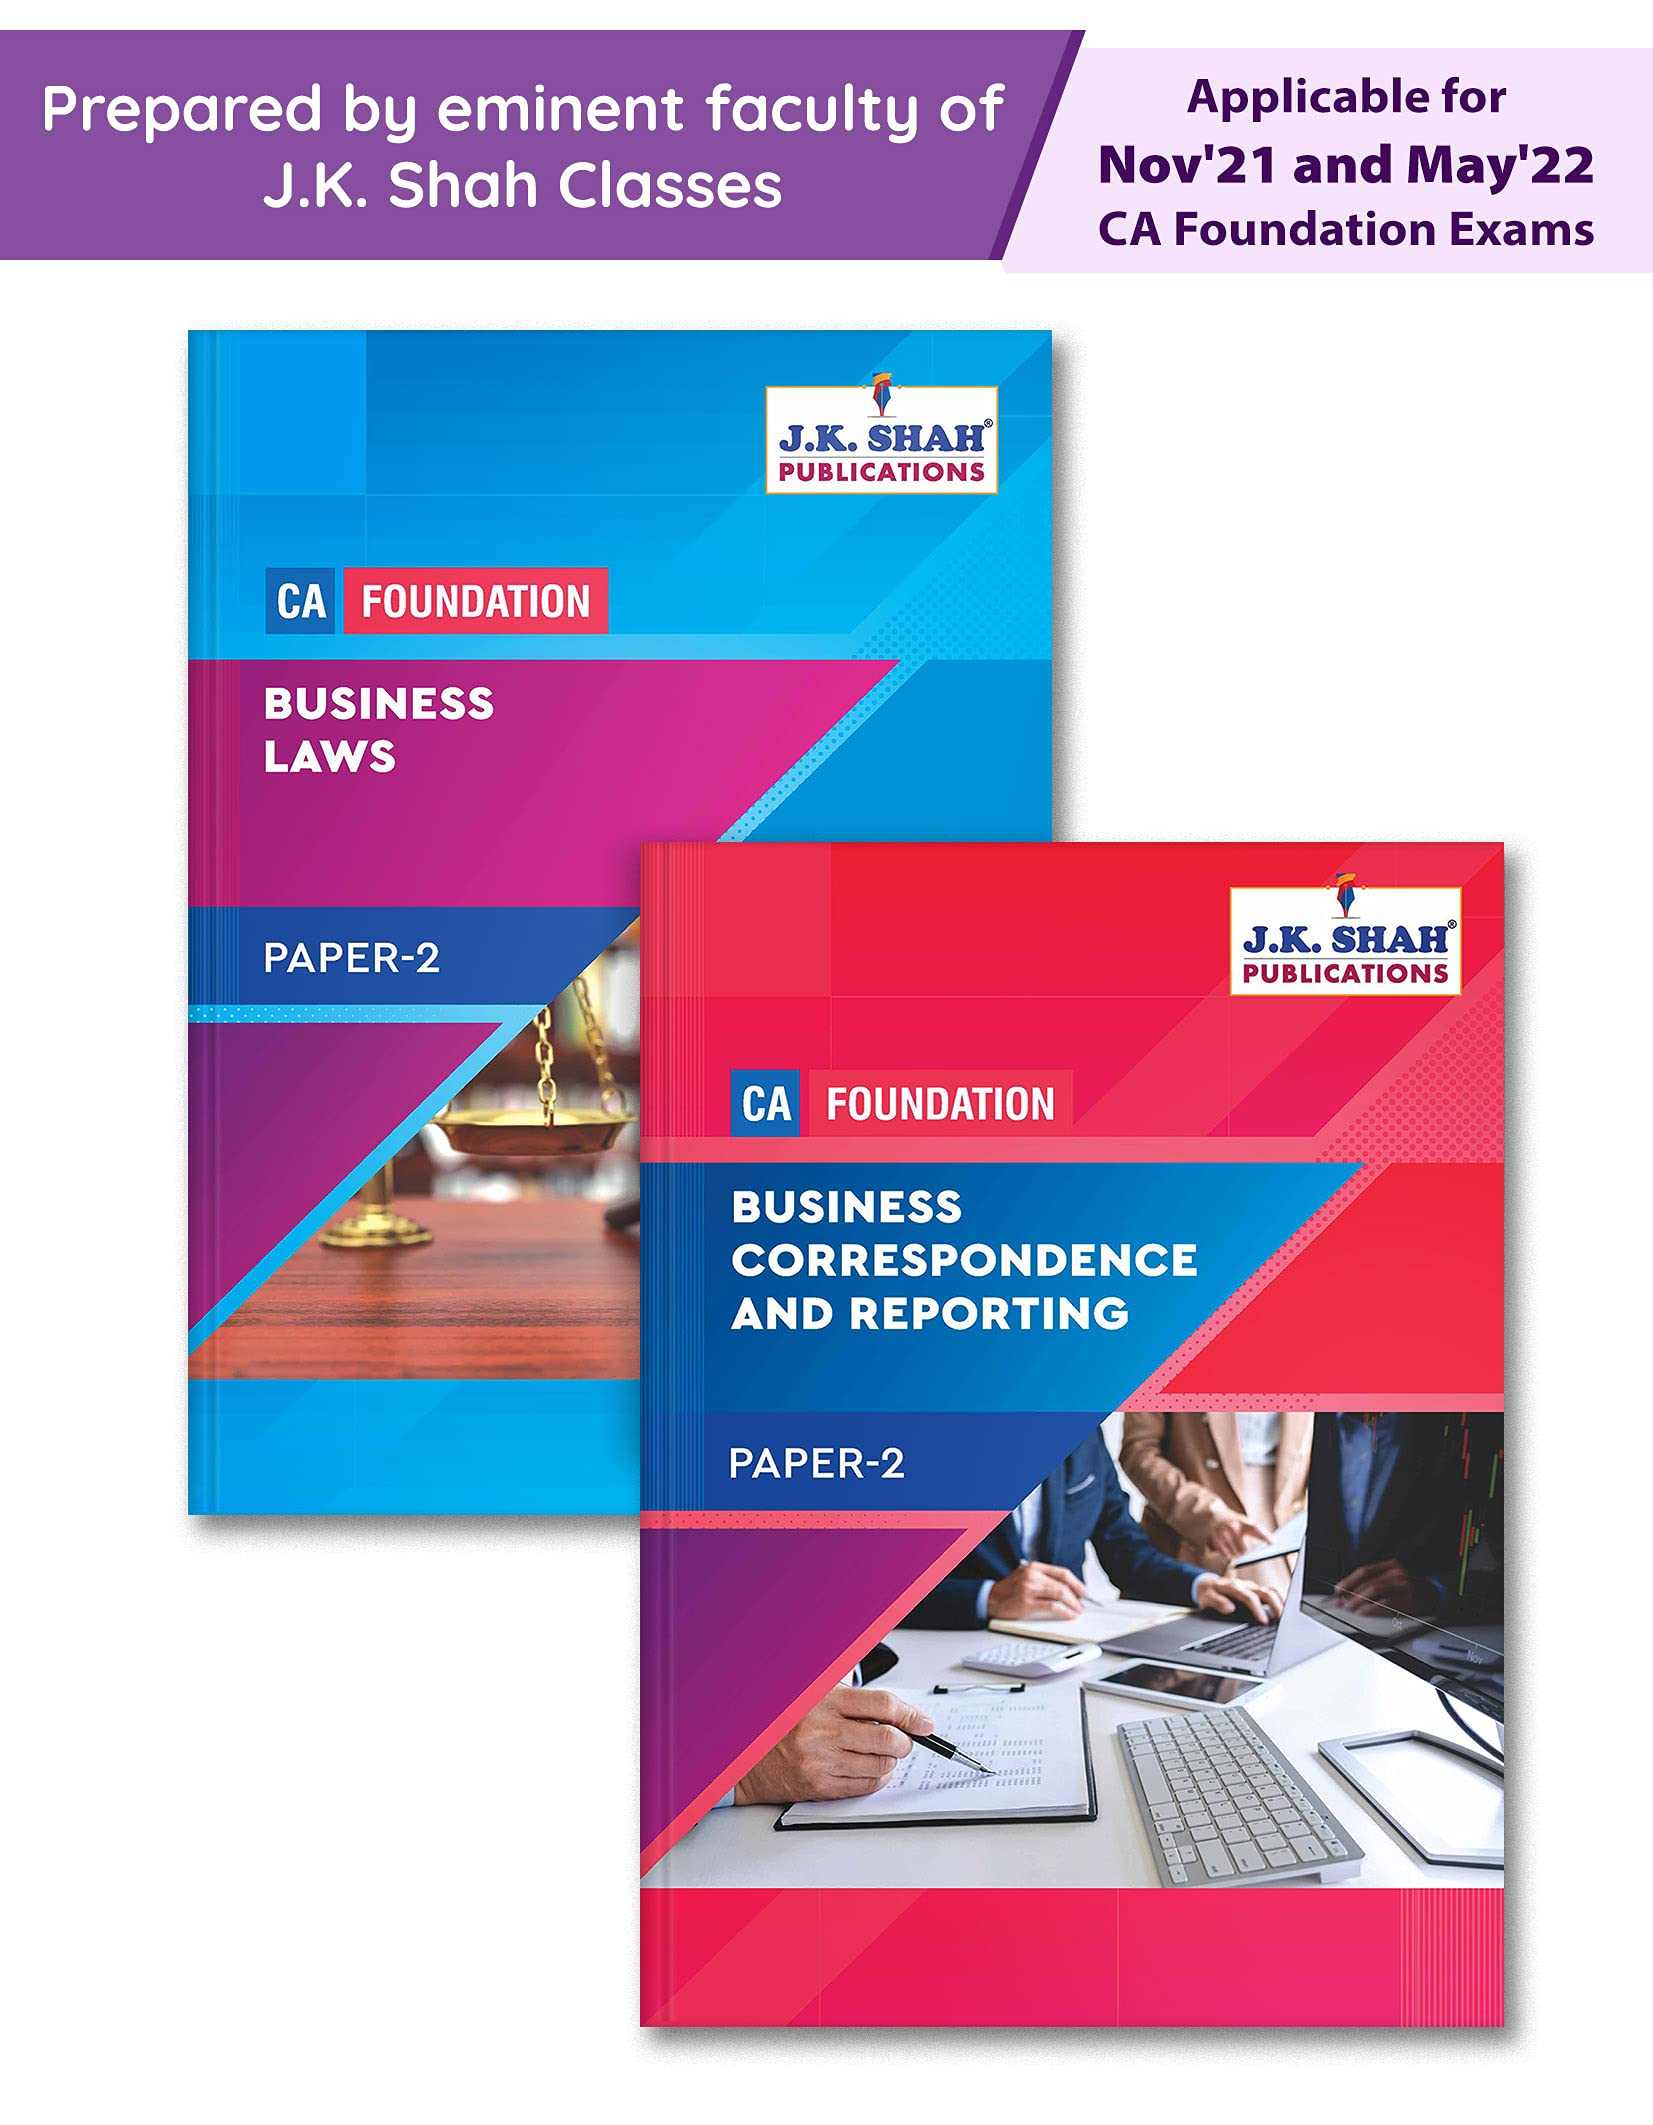 ICAI CA Foundation Notes   Paper 2 Business Law and Business Correspondence & Reporting  JK Shah Classes   Nov 21 and May 22 Exam   Theory & MCQs